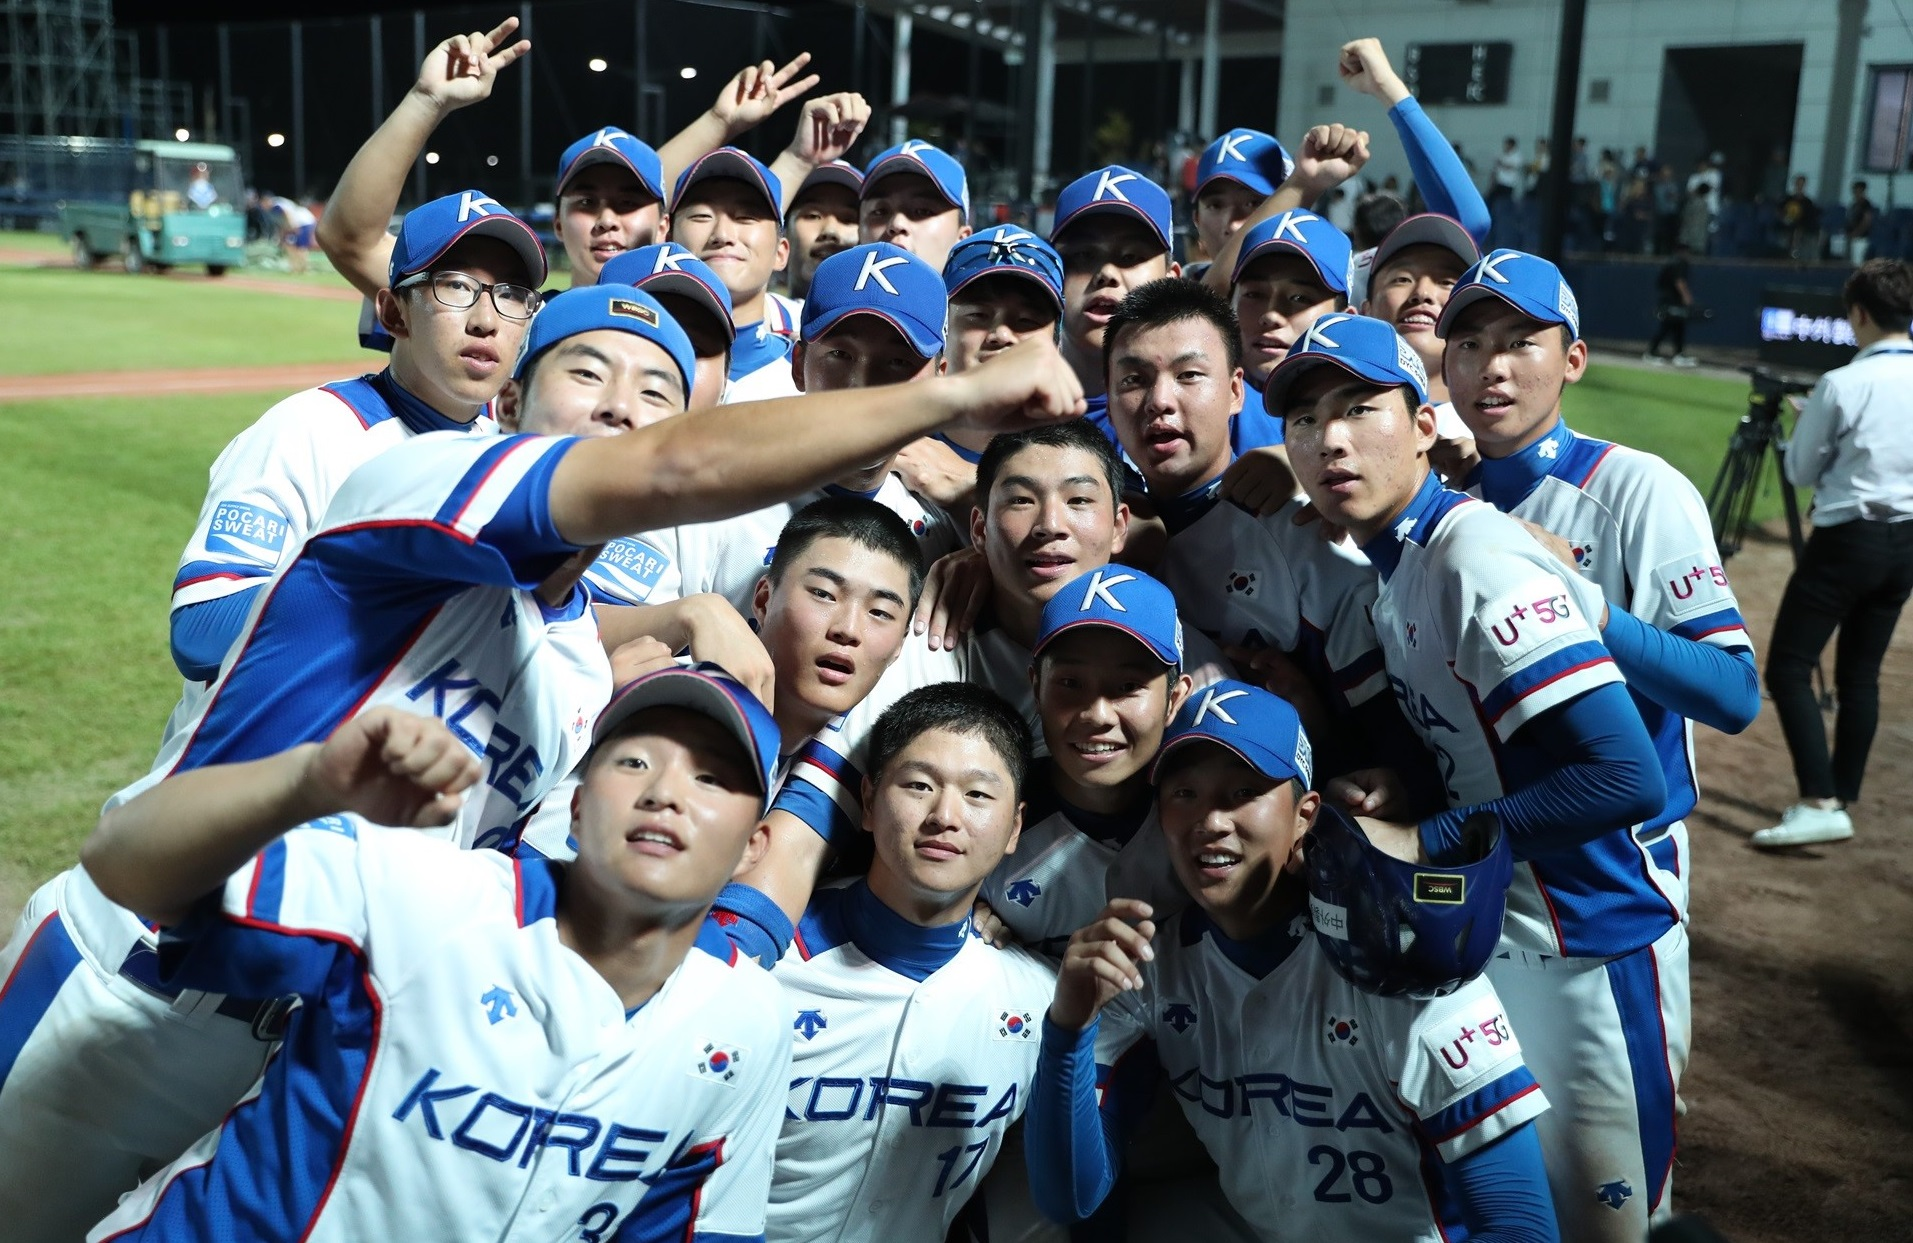 Selfie time for Korea